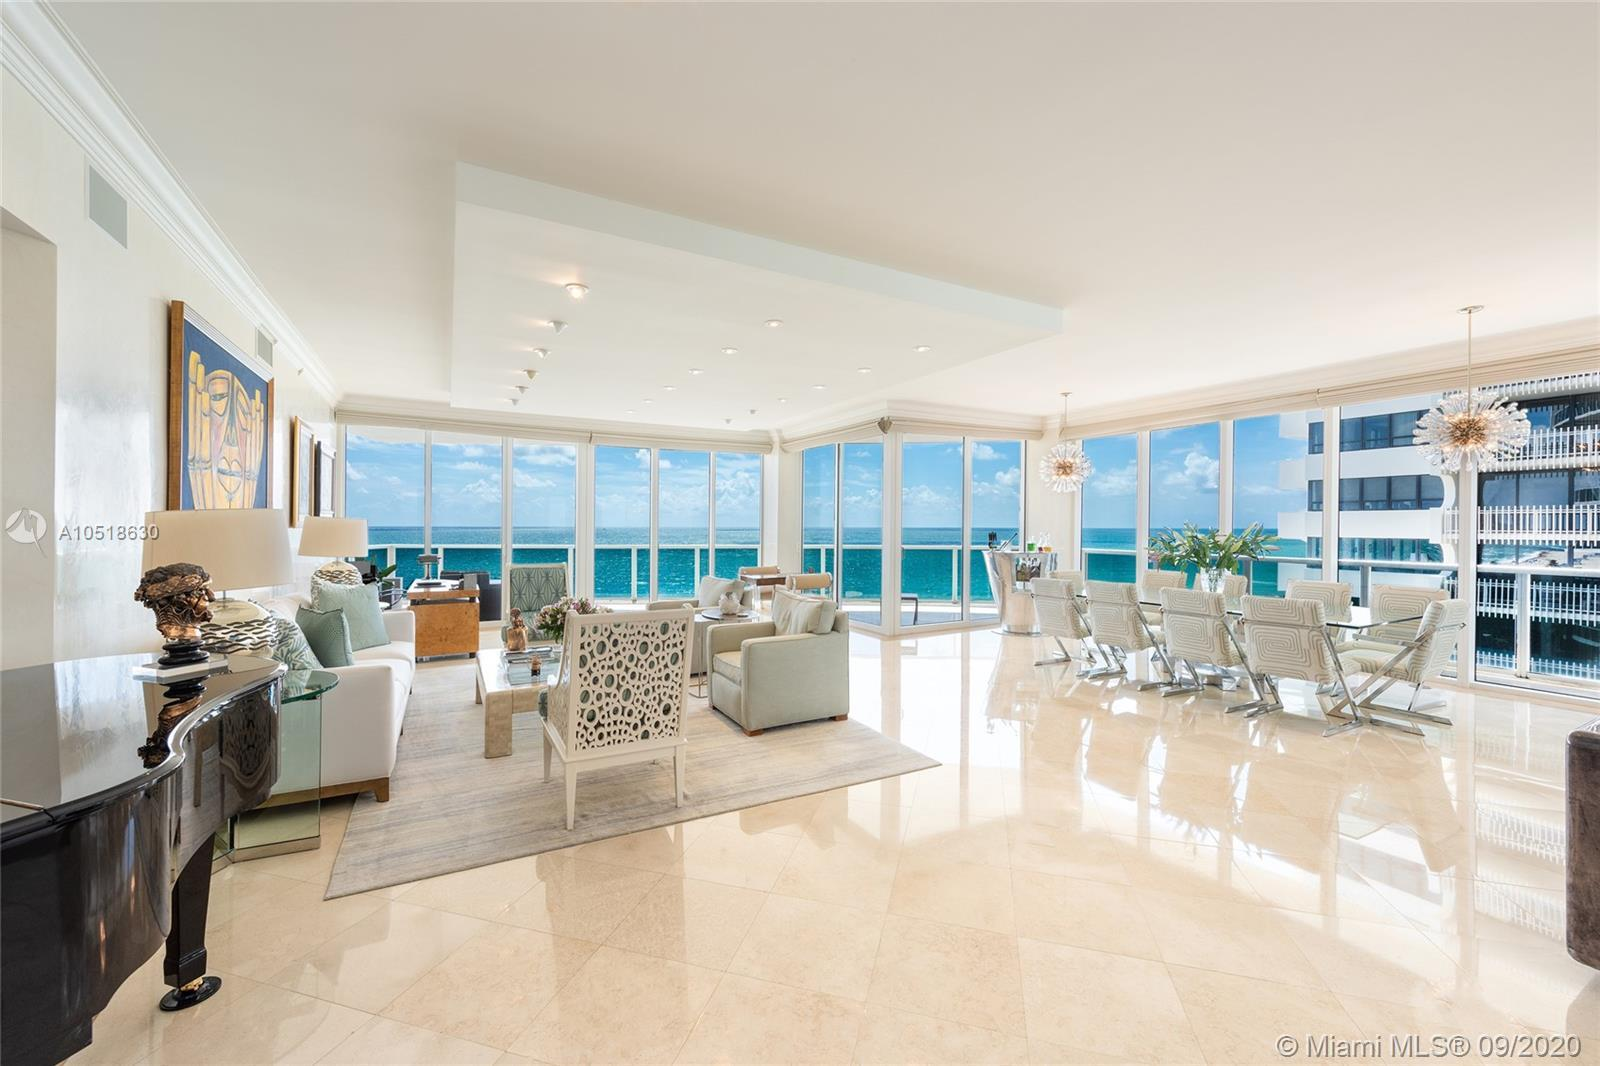 This beautifully designed 3BR/5+1BA Oceanfront unit at the Bellini condo is truly stunning featuring